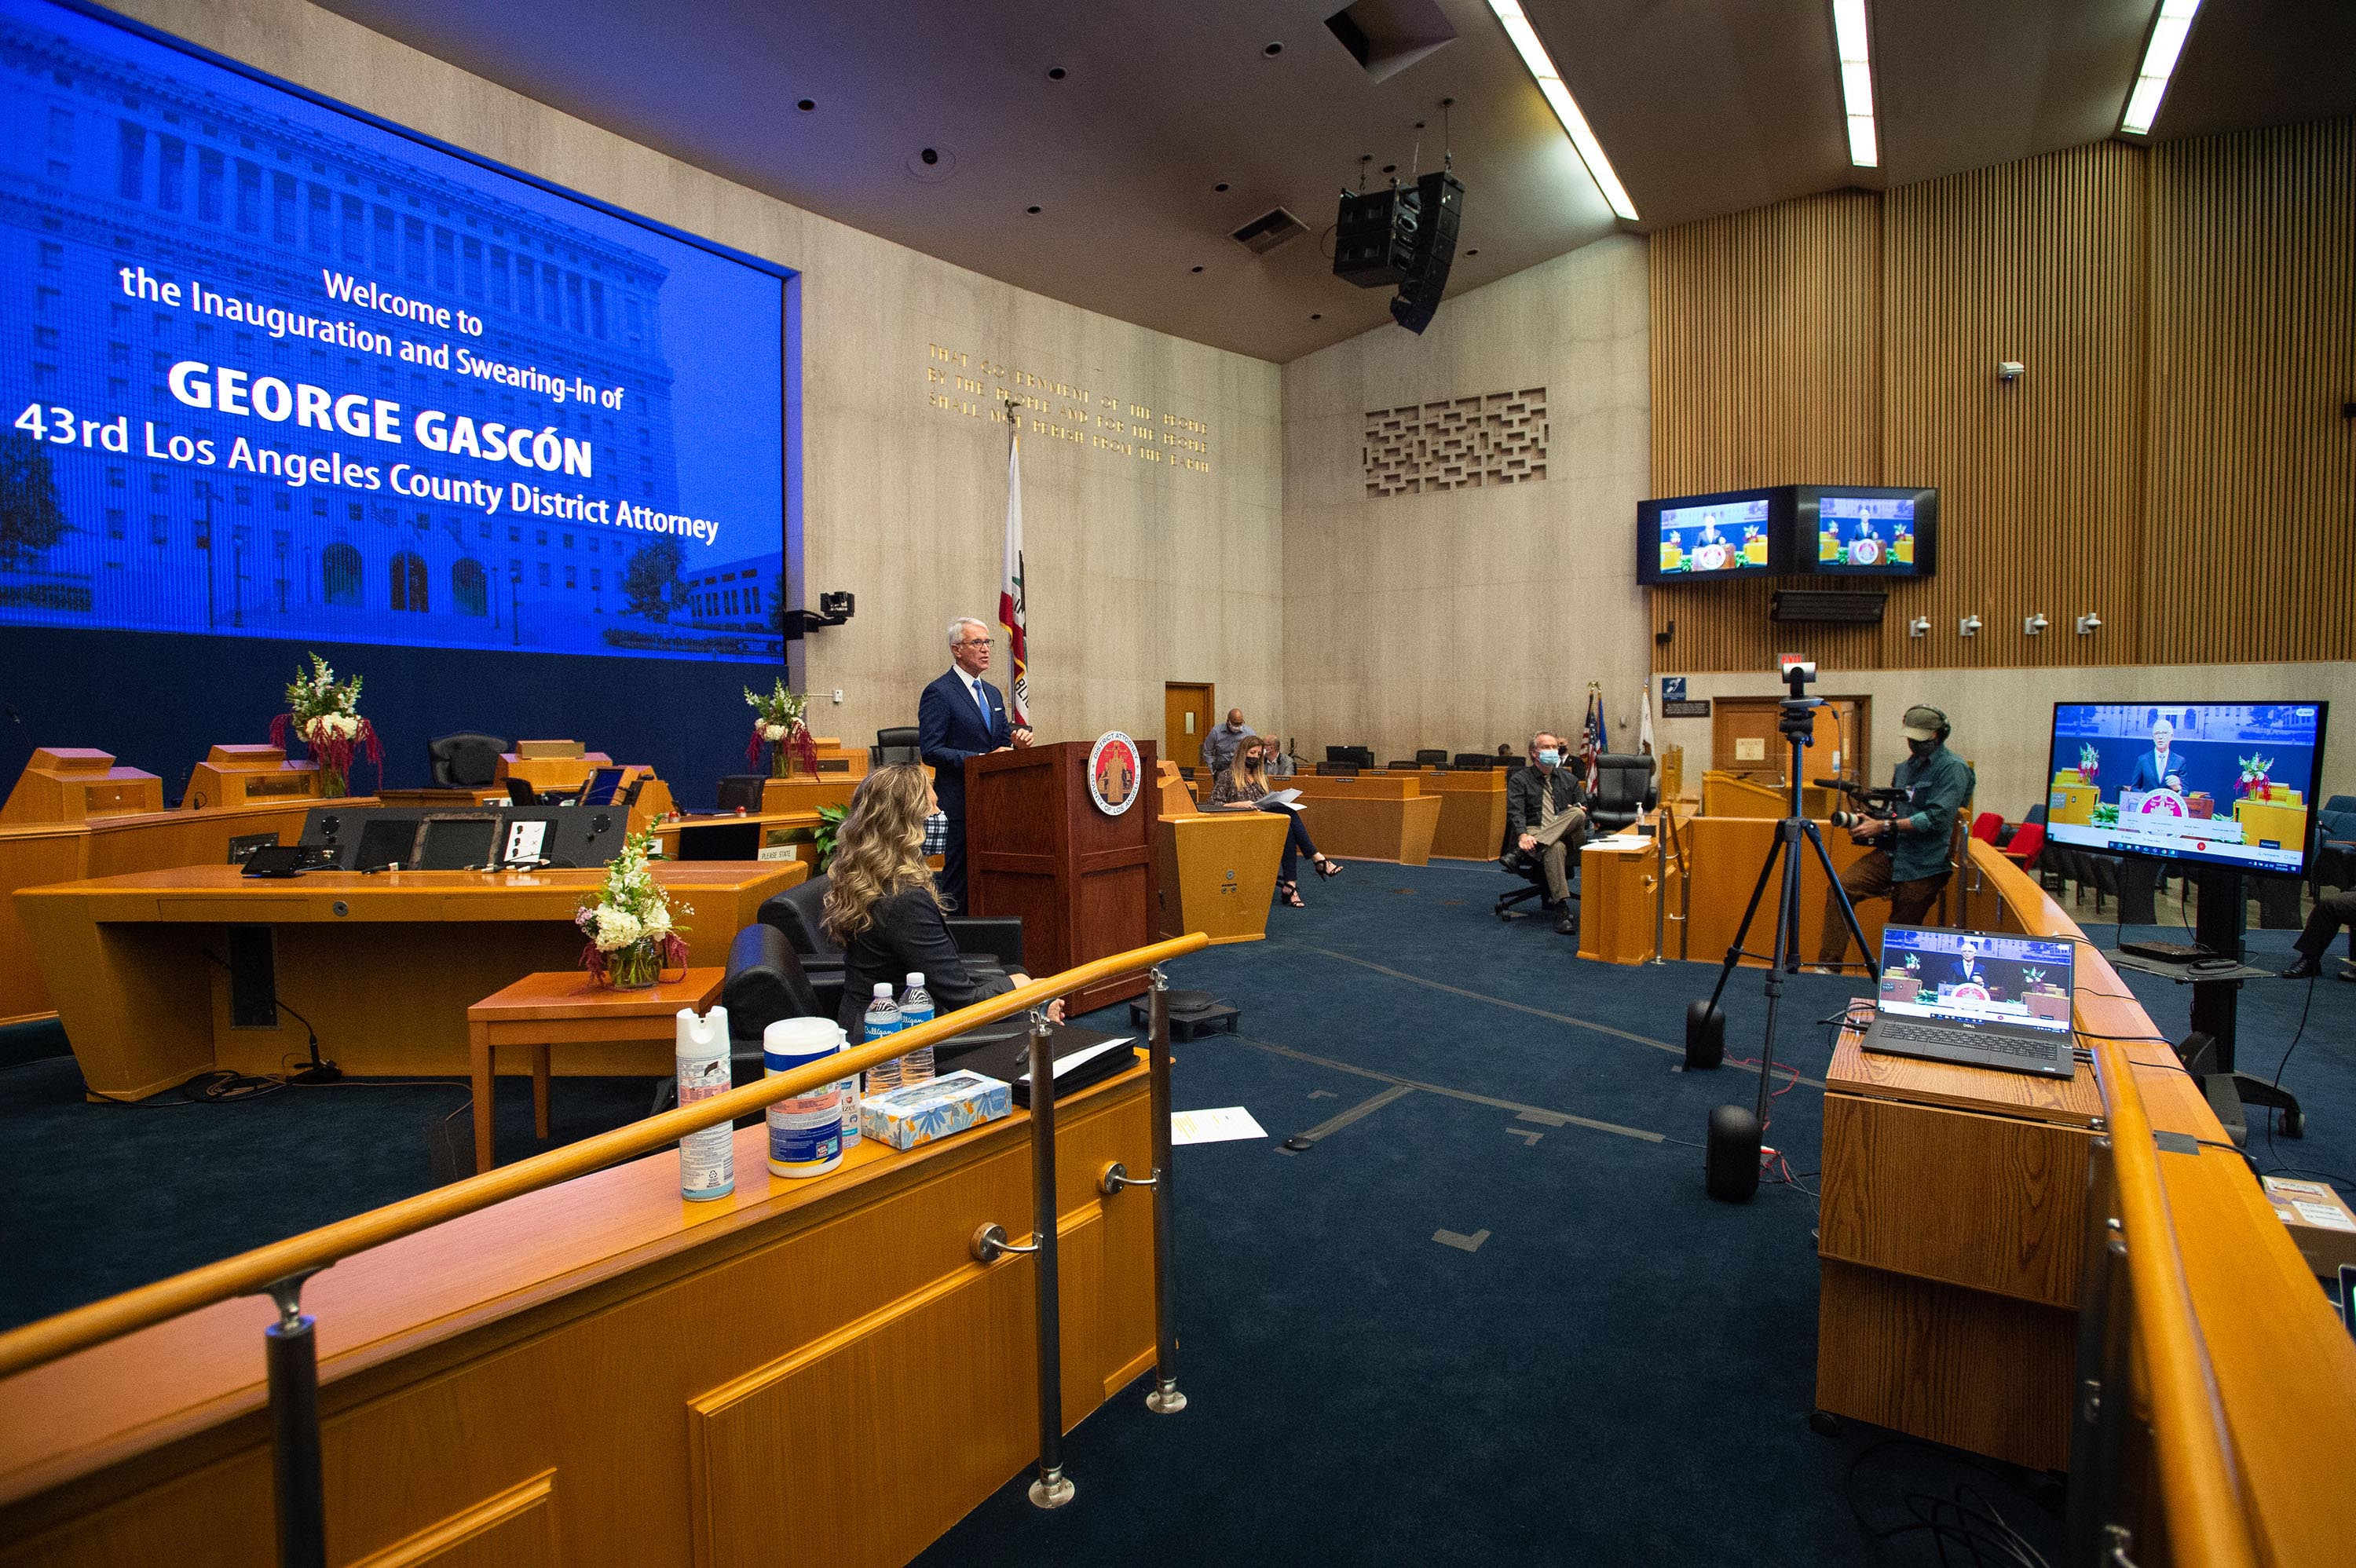 LA County virtual oath for new DA George Gascon <br>  <b>Dec. 7, 2020 – Virtual oath of office for District Attorney George Gascón</b><br>   <i>Photo by Bryan Chan / Board of Supervisors</i>